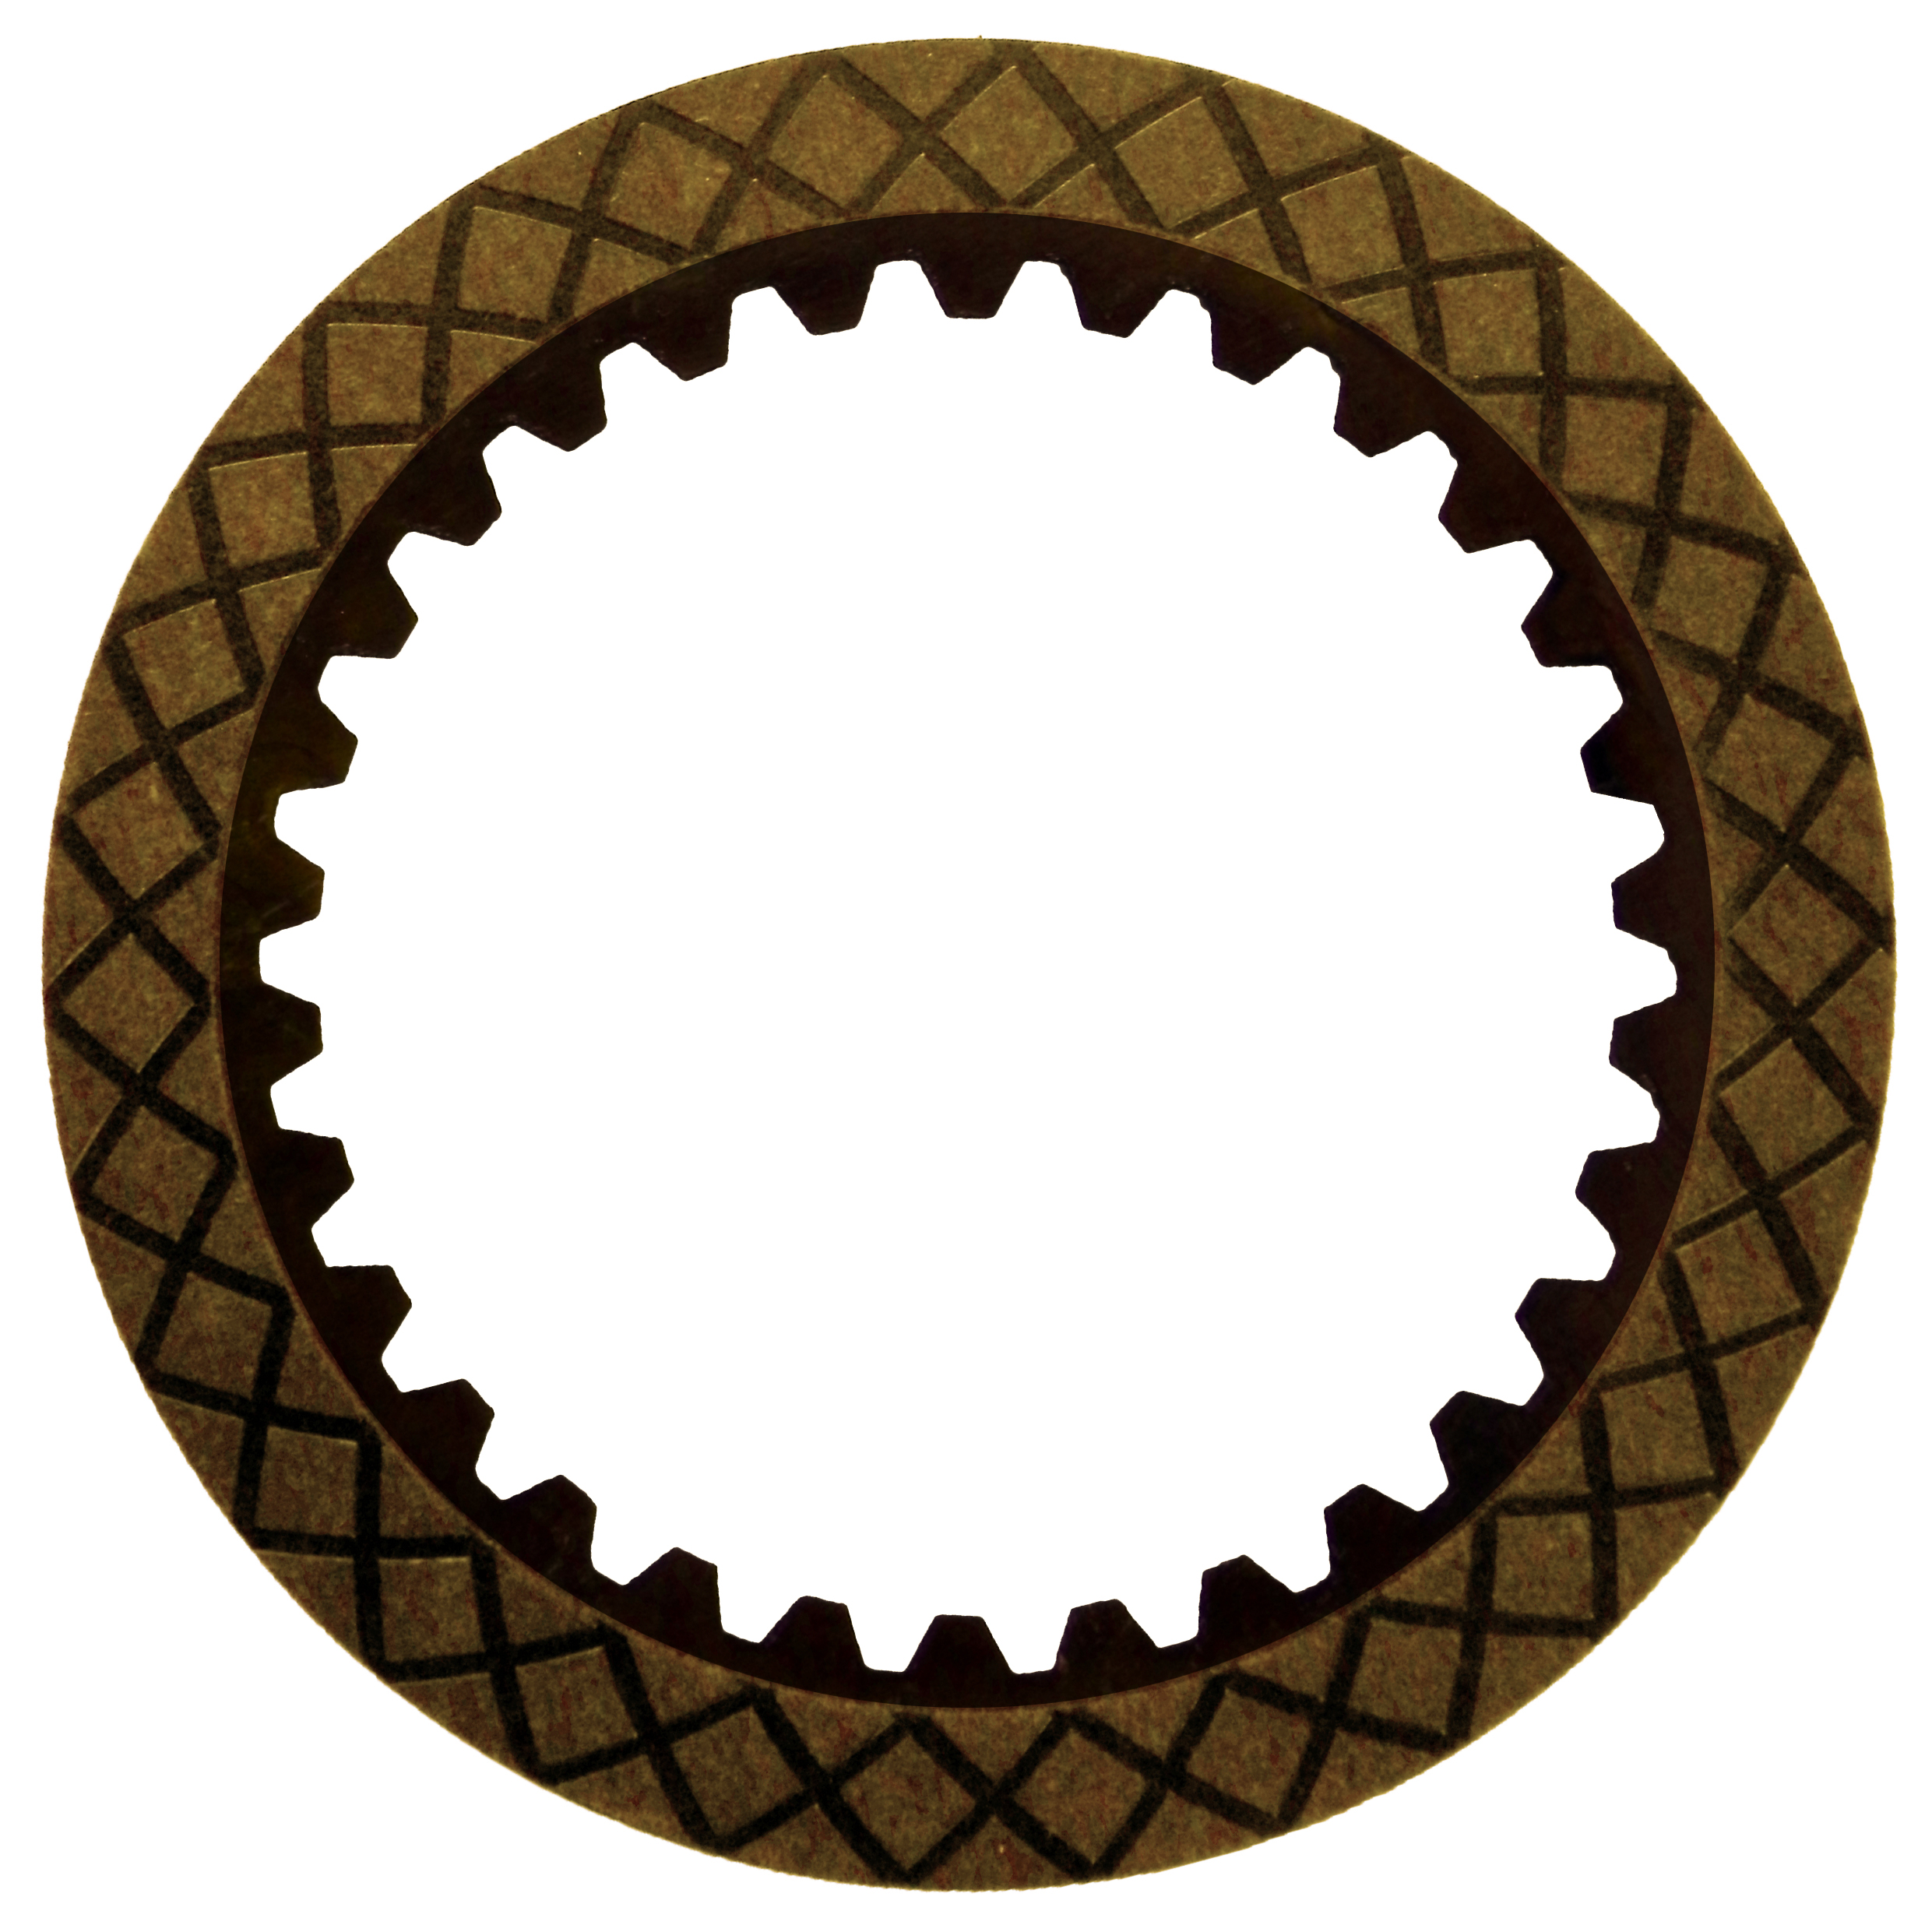 R571868 | 2012-2013 Friction Clutch Plate GPX Low GPX BRZA, MZ2A